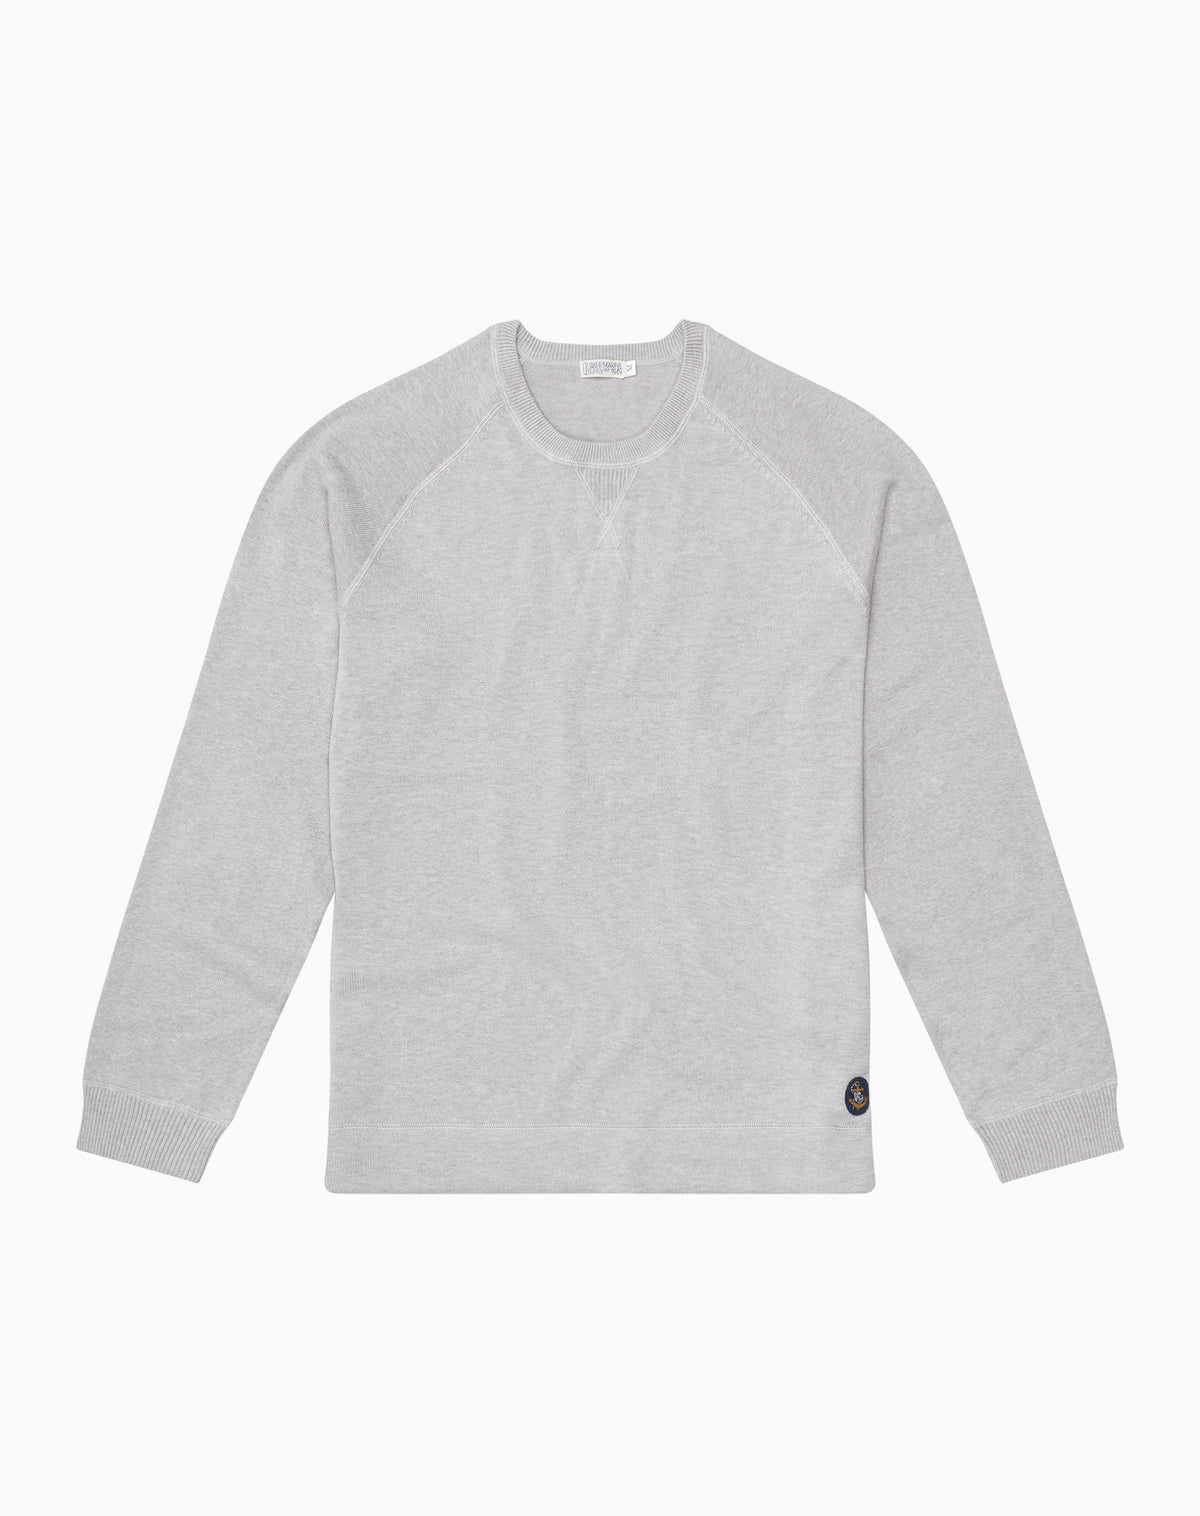 Contender Sweater in Gray